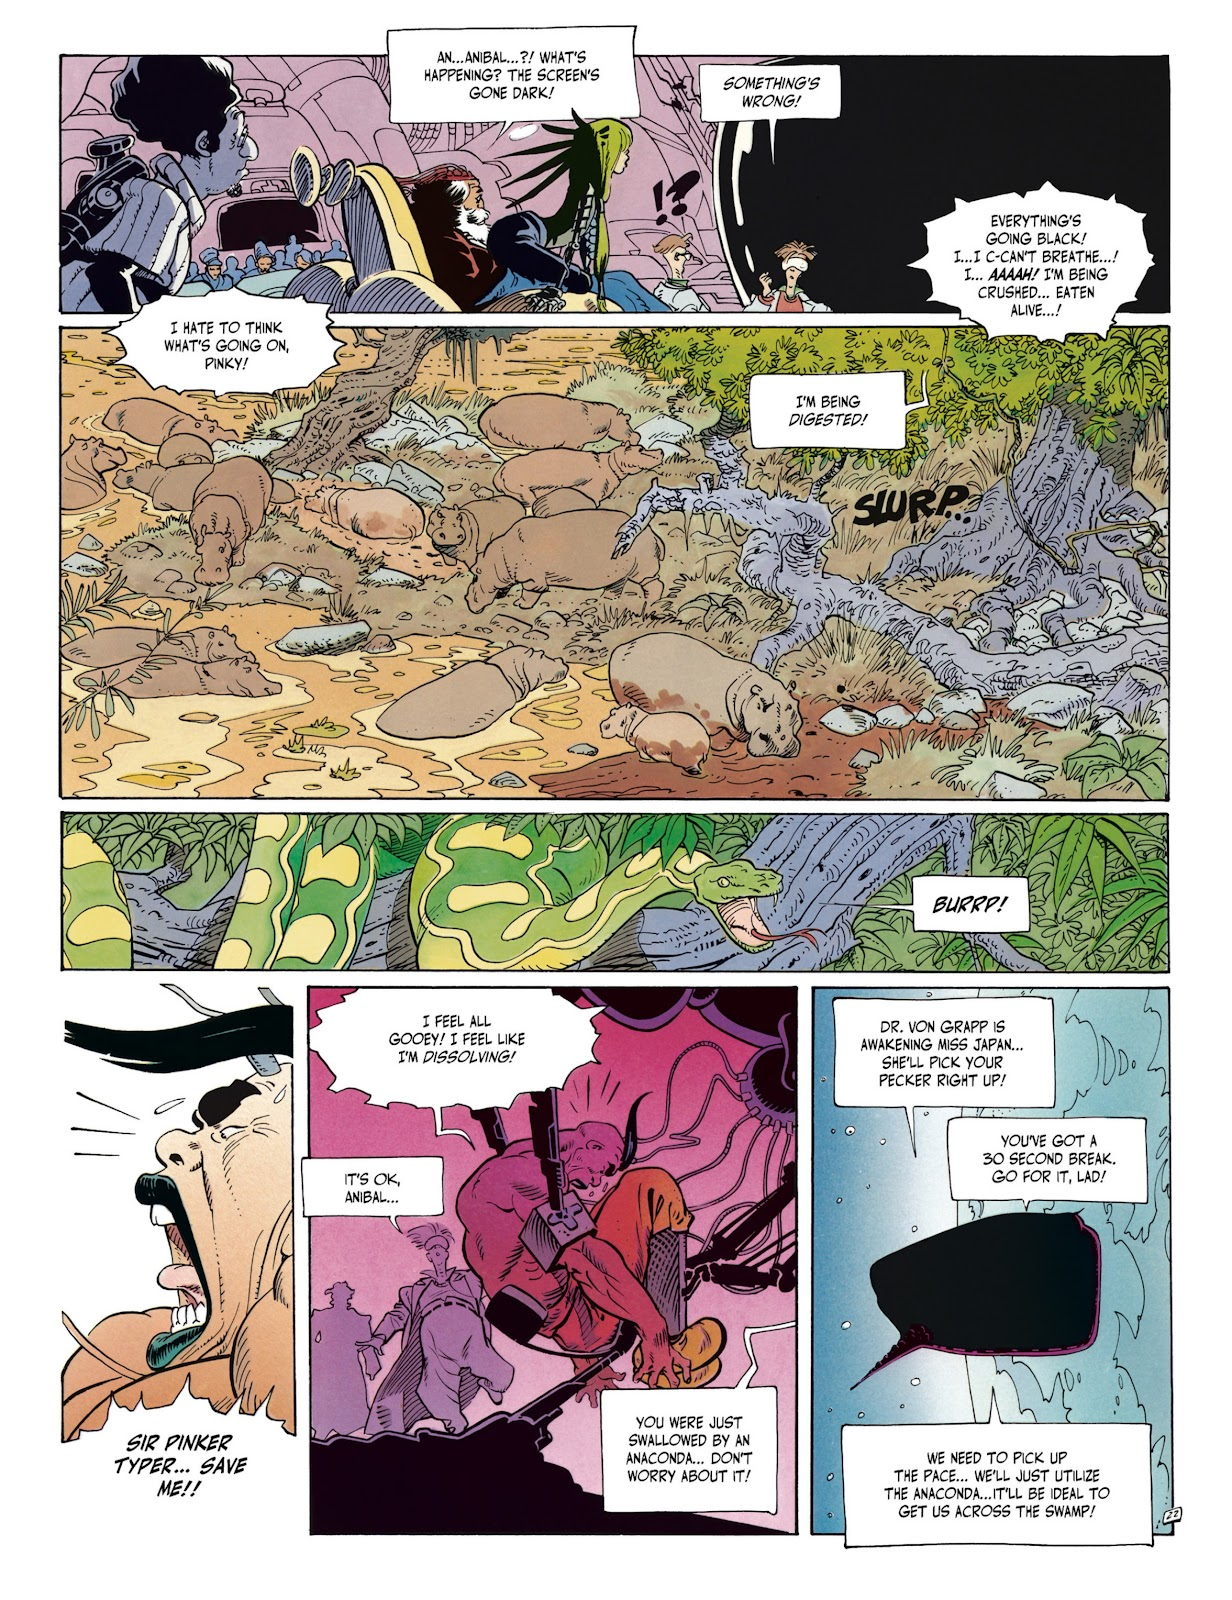 Anibal 5 Issue 2 | Viewcomic reading comics online for free 2019